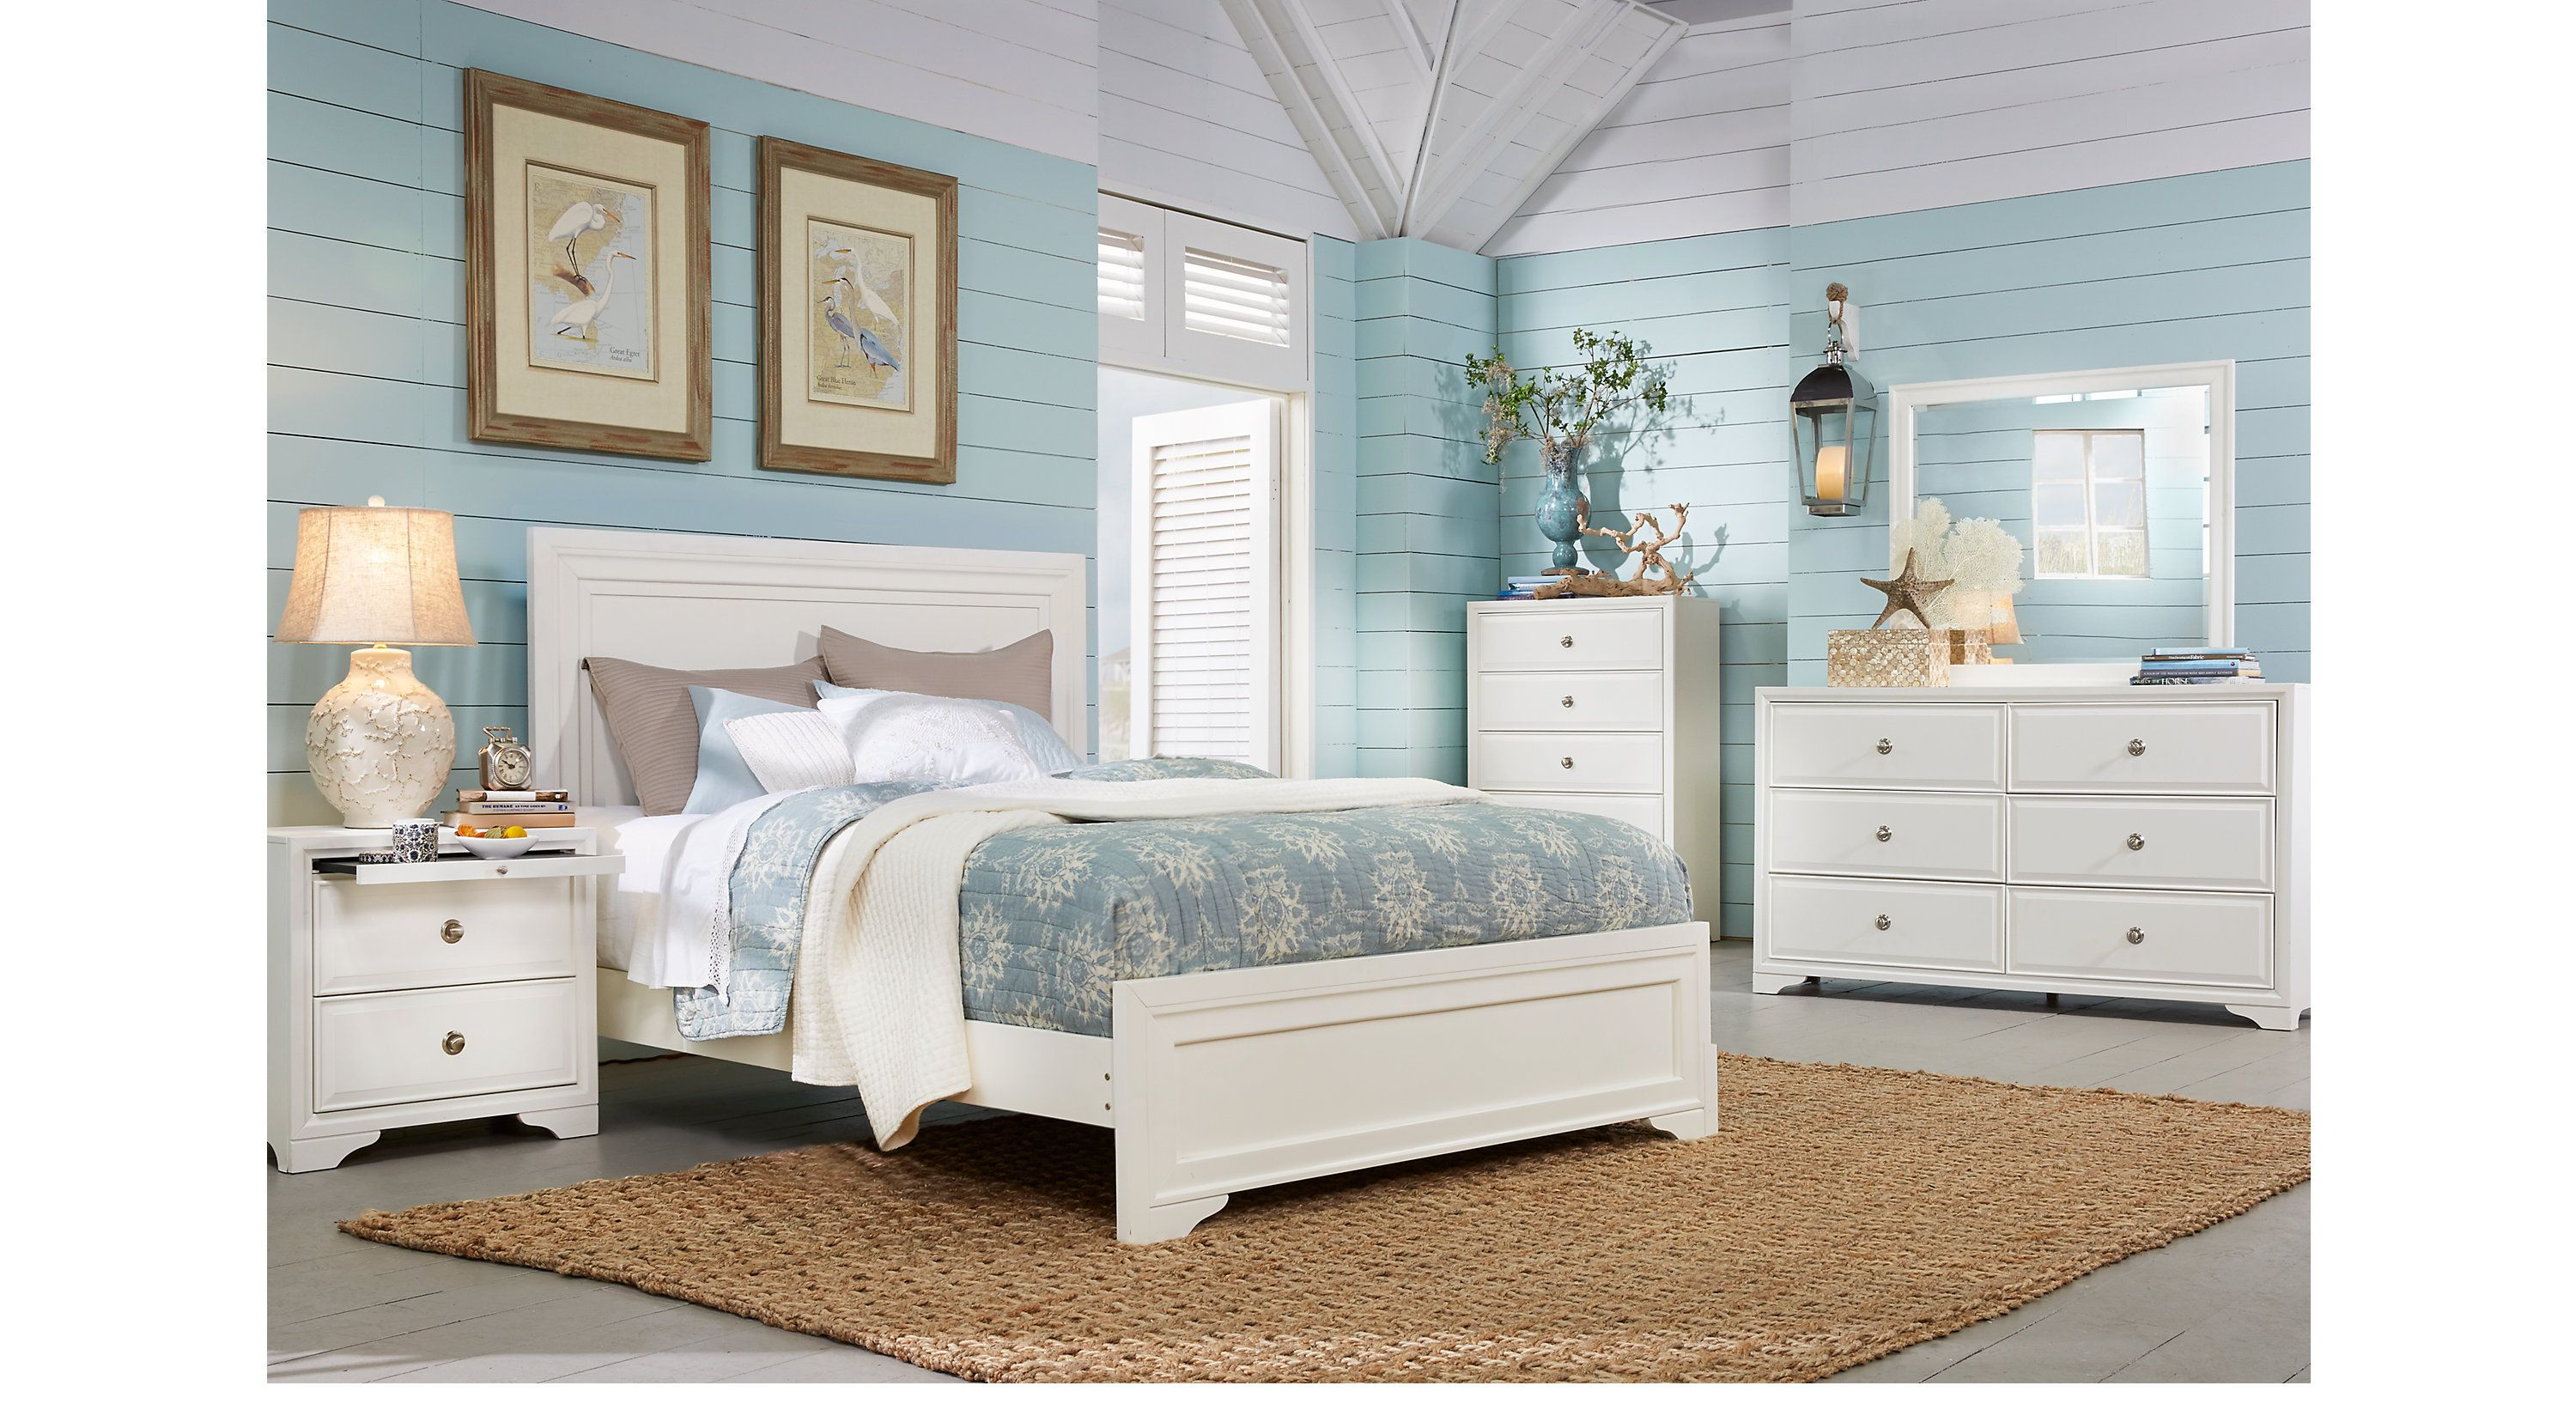 Queen Bedroom Sets Rooms To Go Belcourt White 5 Pc Queen Panel Bedroom 3105453p White Bedroom Set Bedroom Sets Queen Queen Sized Bedroom Sets